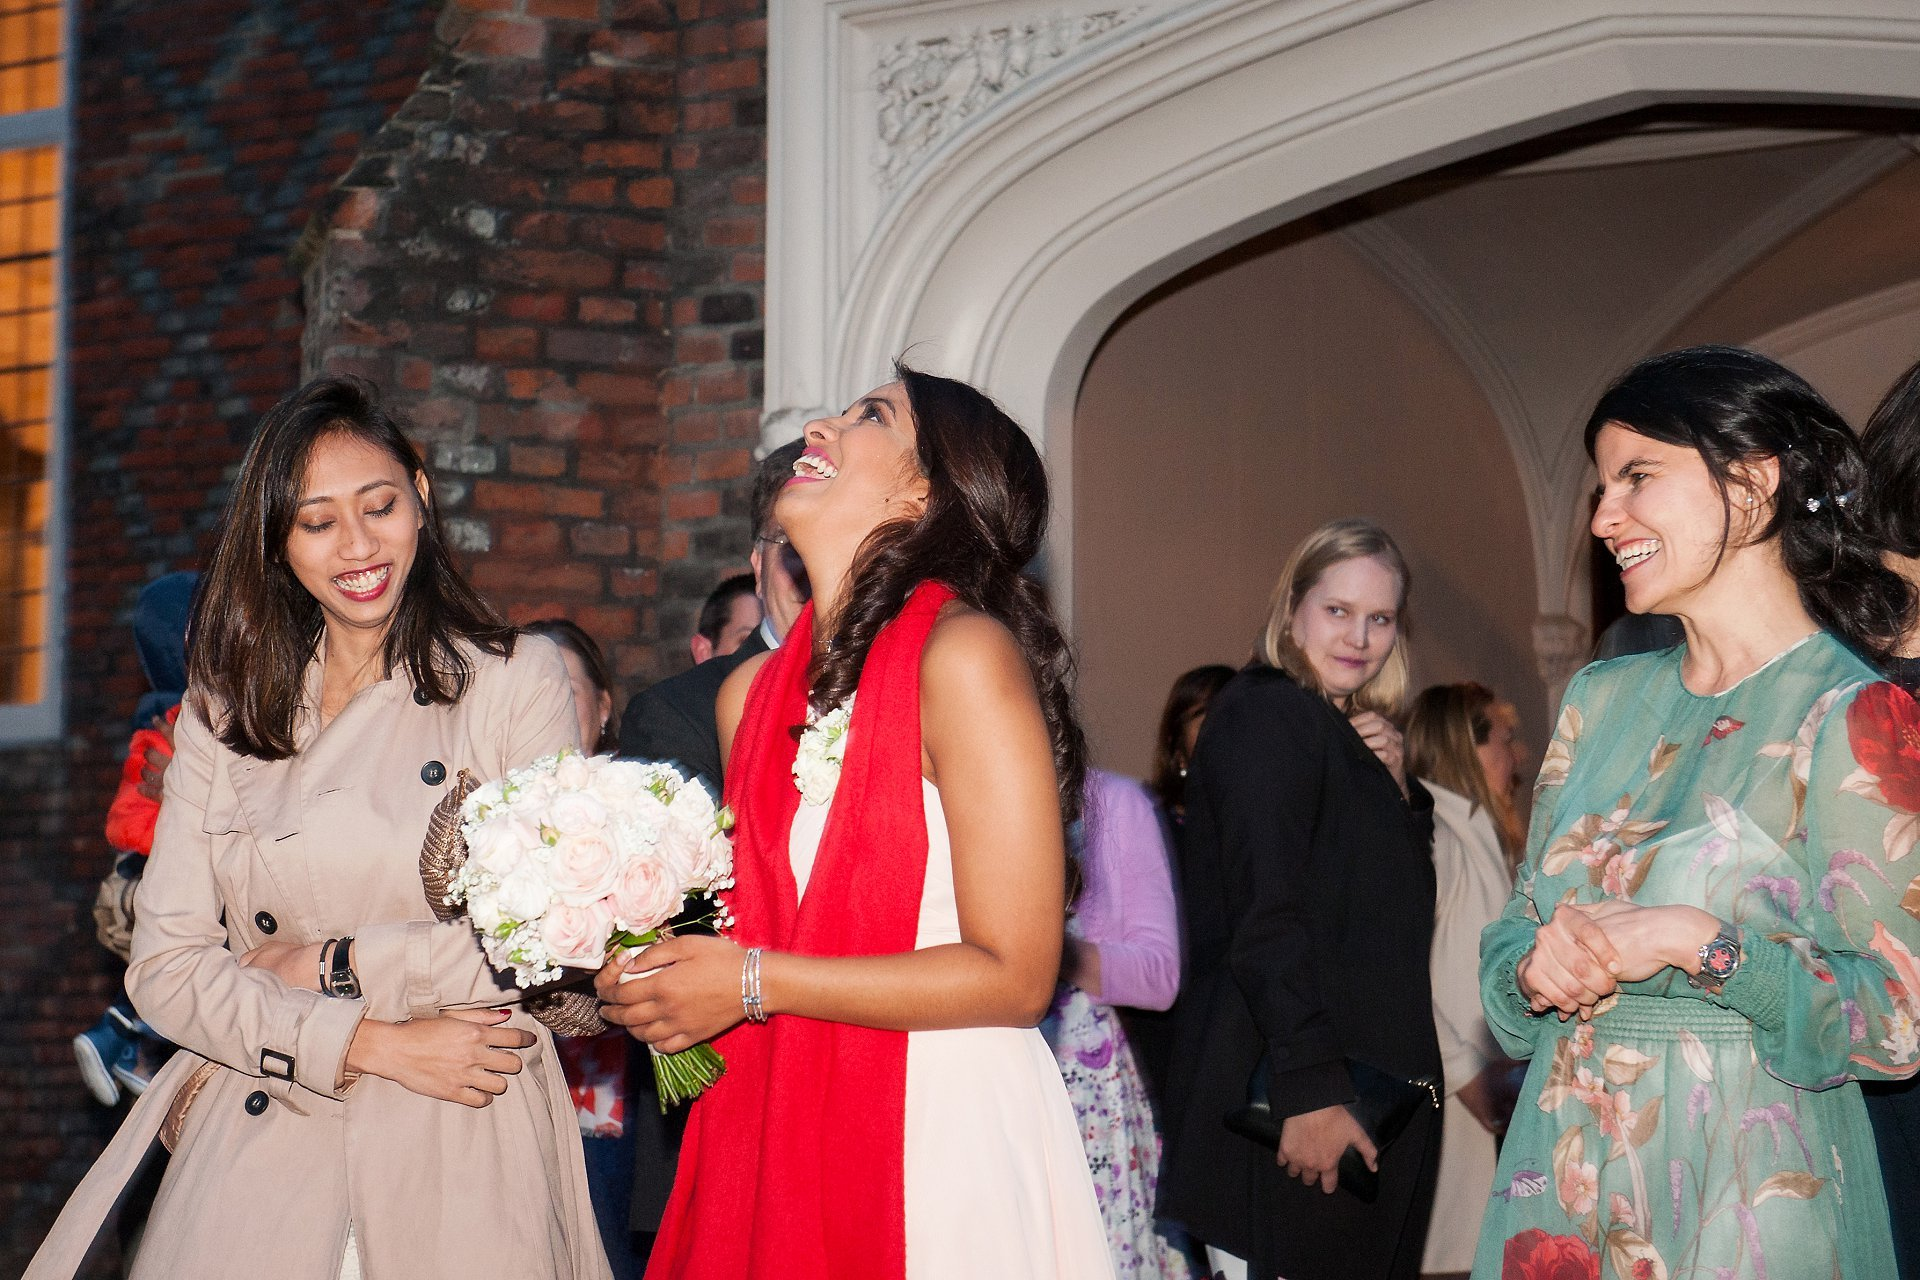 Throwing of the bouquet in the courtyard at Fulham Palace